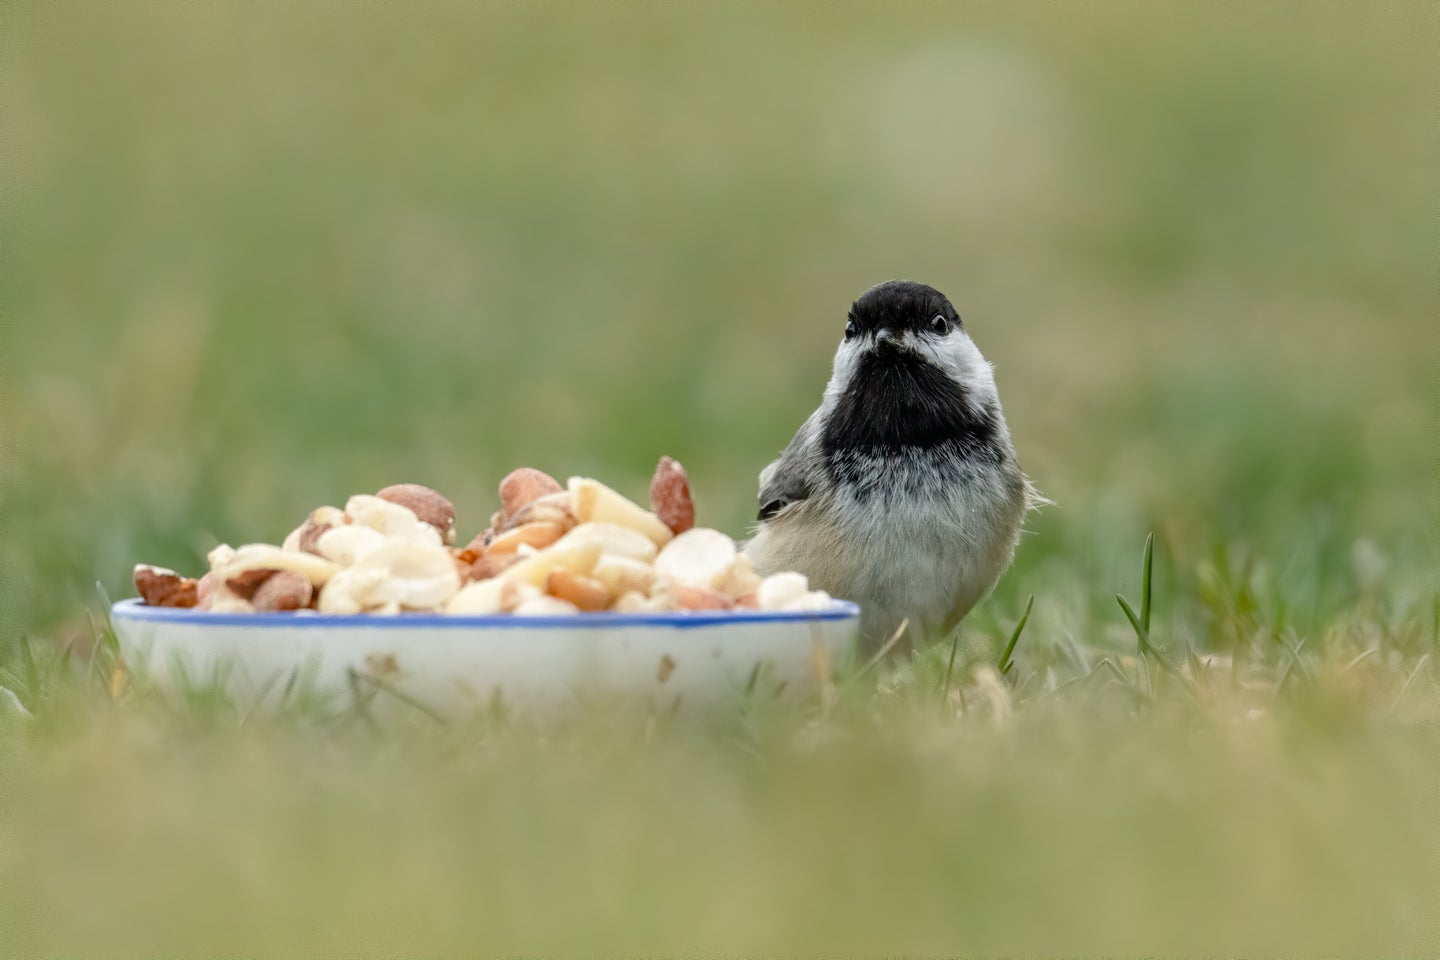 Small bird with bowl of bird food in a field.